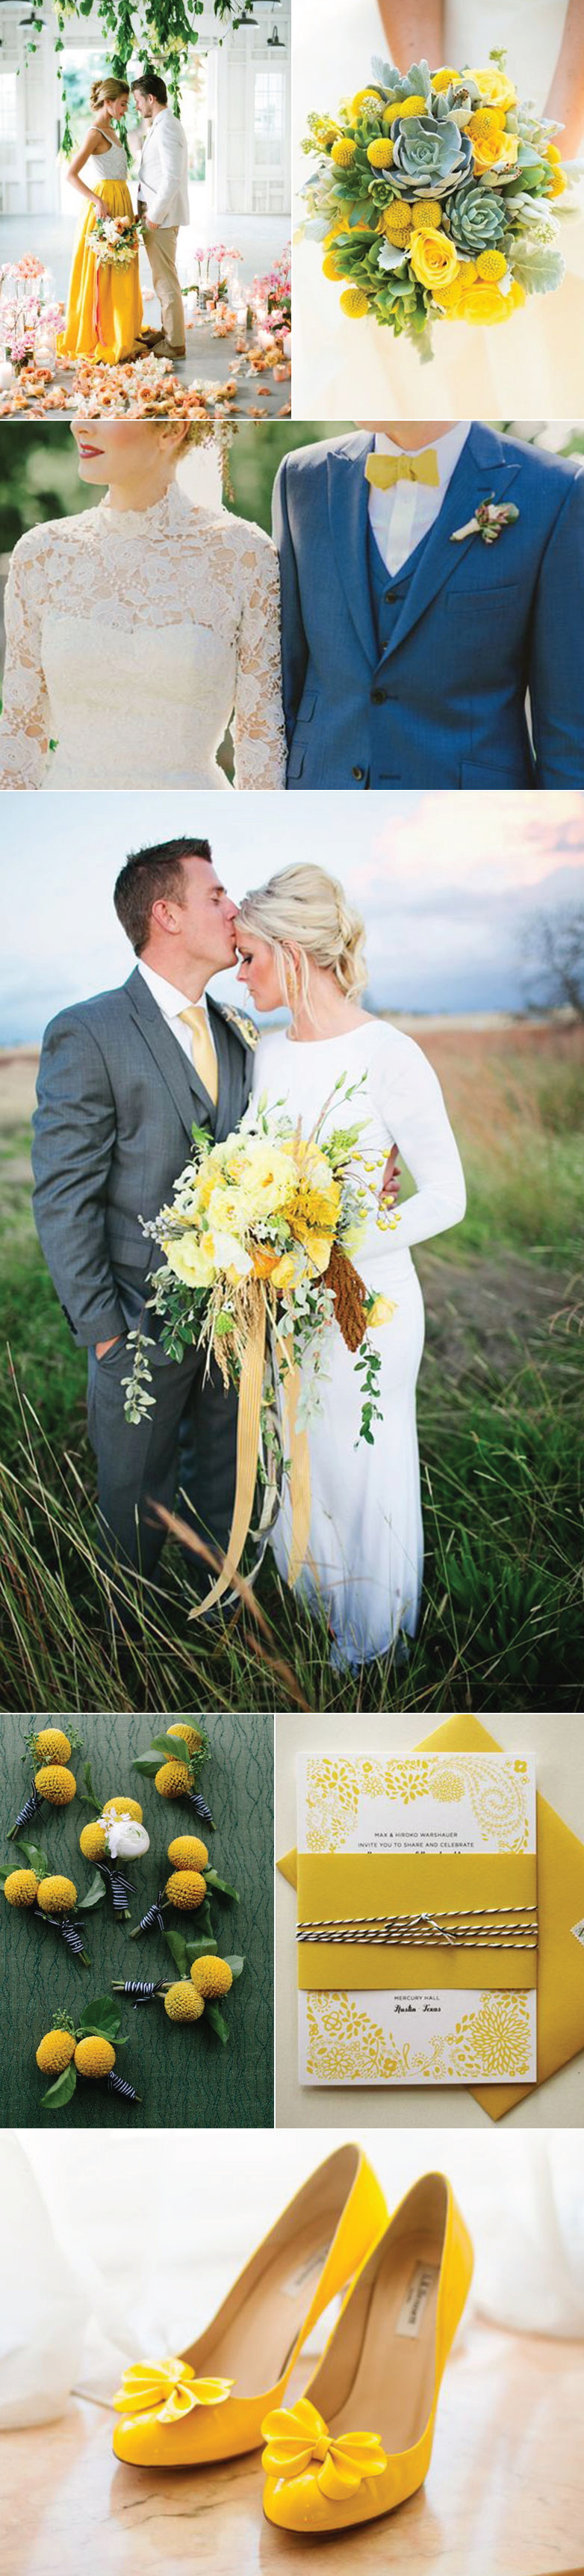 Wedding Color Ideas For Spring Yellow | Bows-N-Ties.com